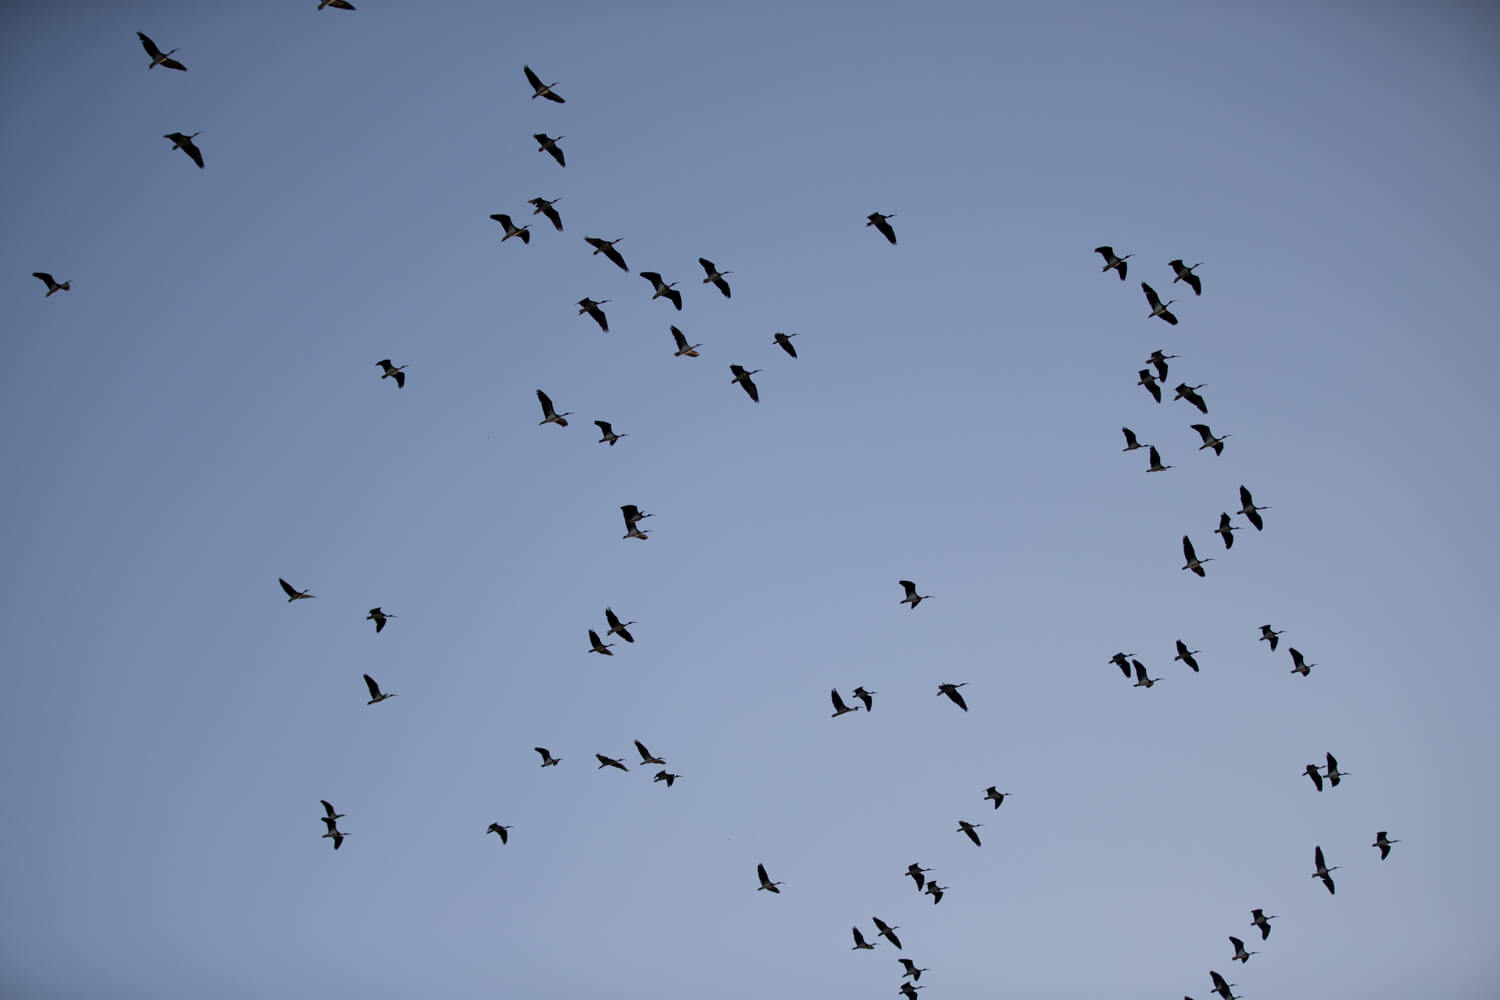 birds flying in the sky - professional wedding photography